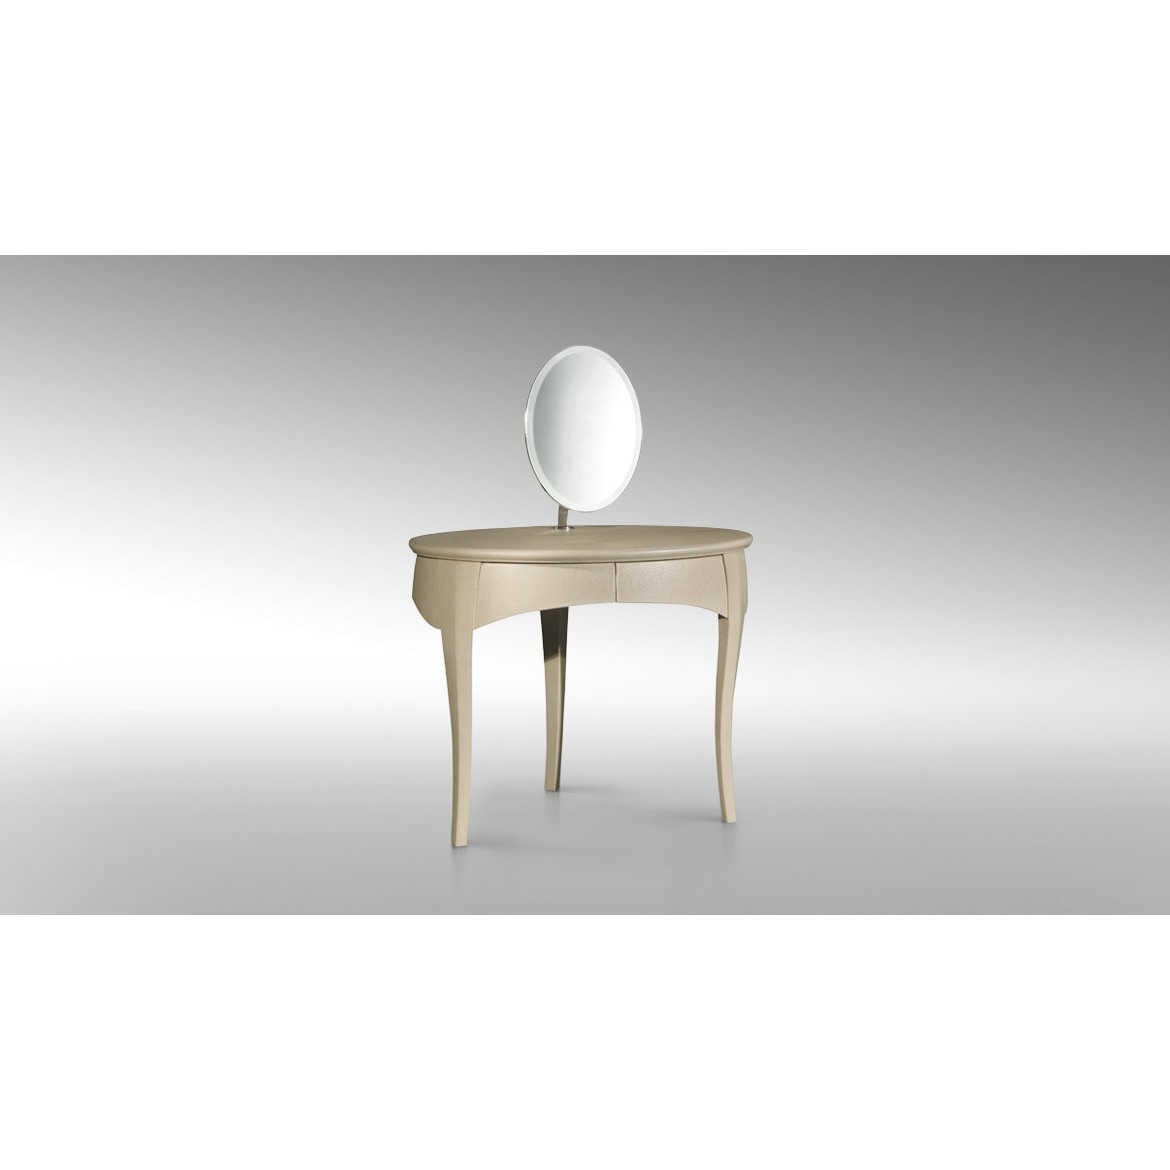 Туалетный столик Canova Console and Beauty Desk 2, дизайн Fendi Casa